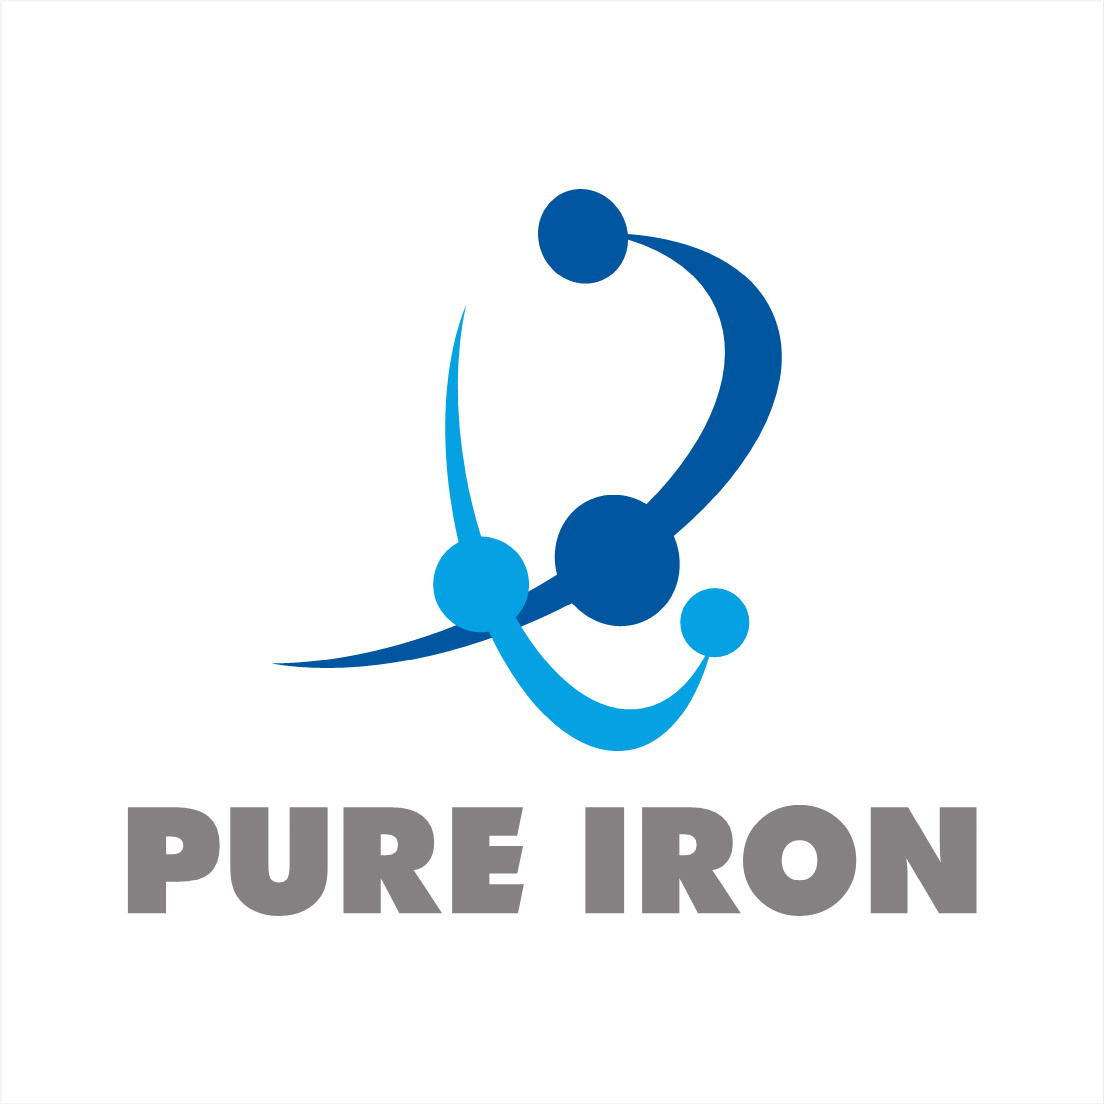 Logo Design by oldpapa - Entry No. 166 in the Logo Design Contest Fun Logo Design for Pure Iron.